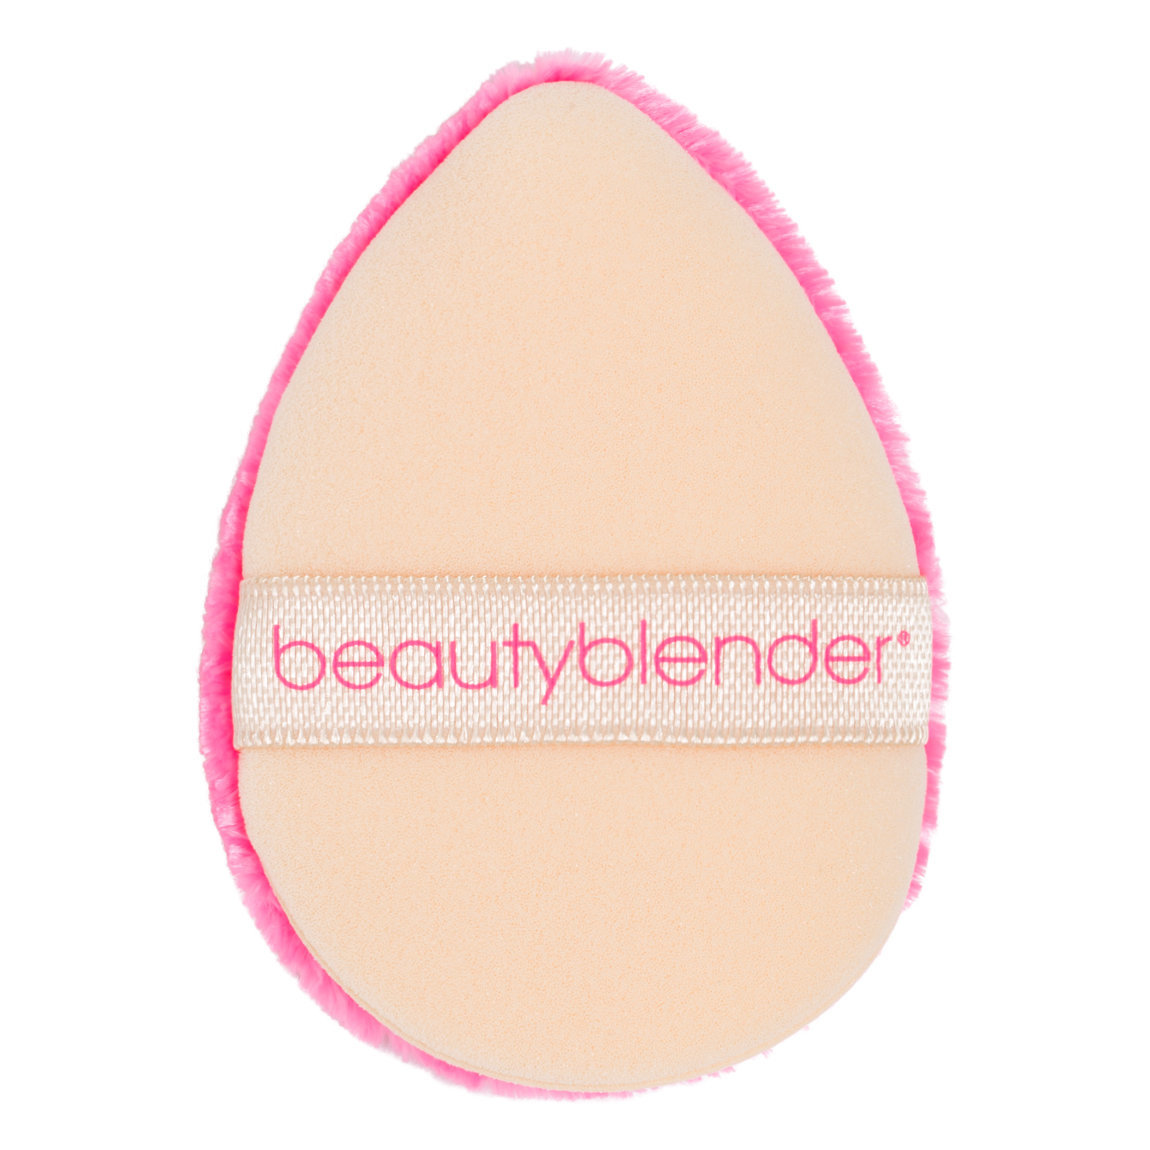 beautyblender Power Pocket Puff product smear.